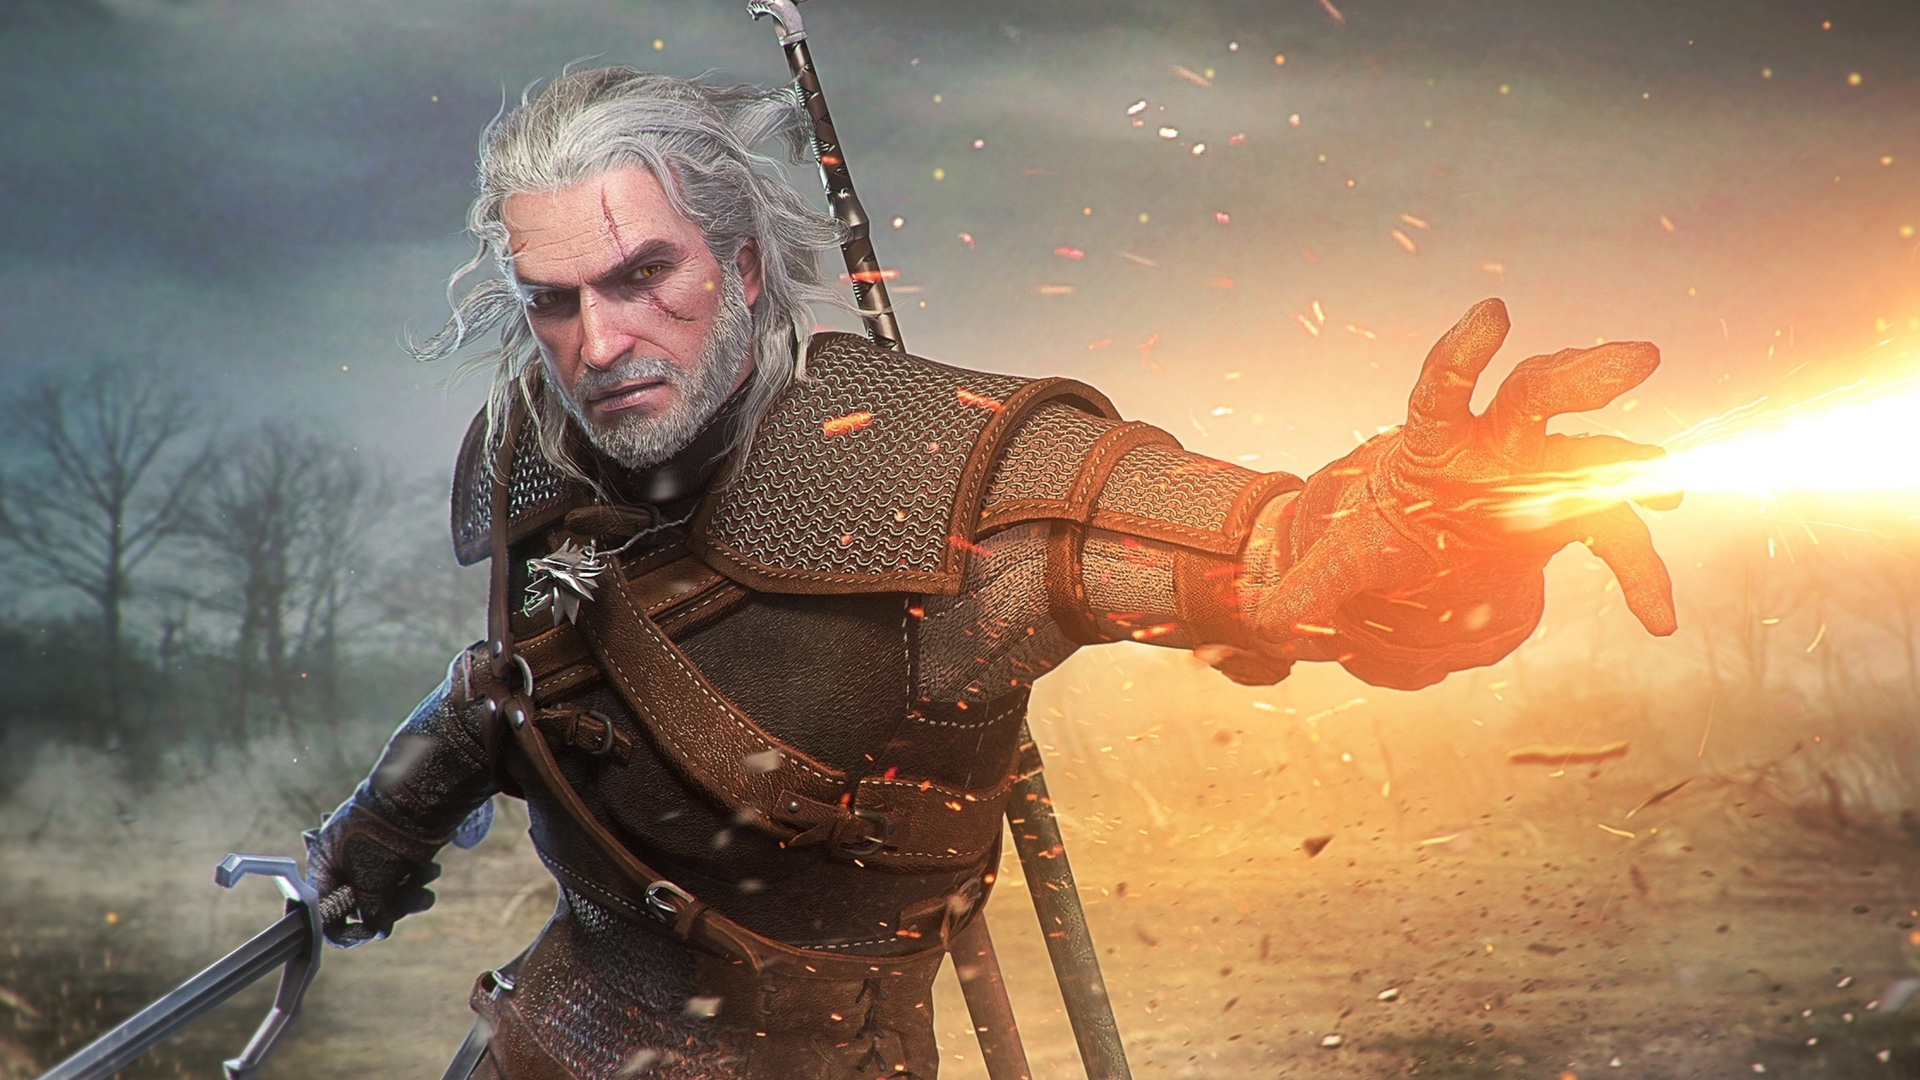 netflixs-the-witcher-starts-casting-soon-and-the-writer:producer-discusses-their-process-social.jpg